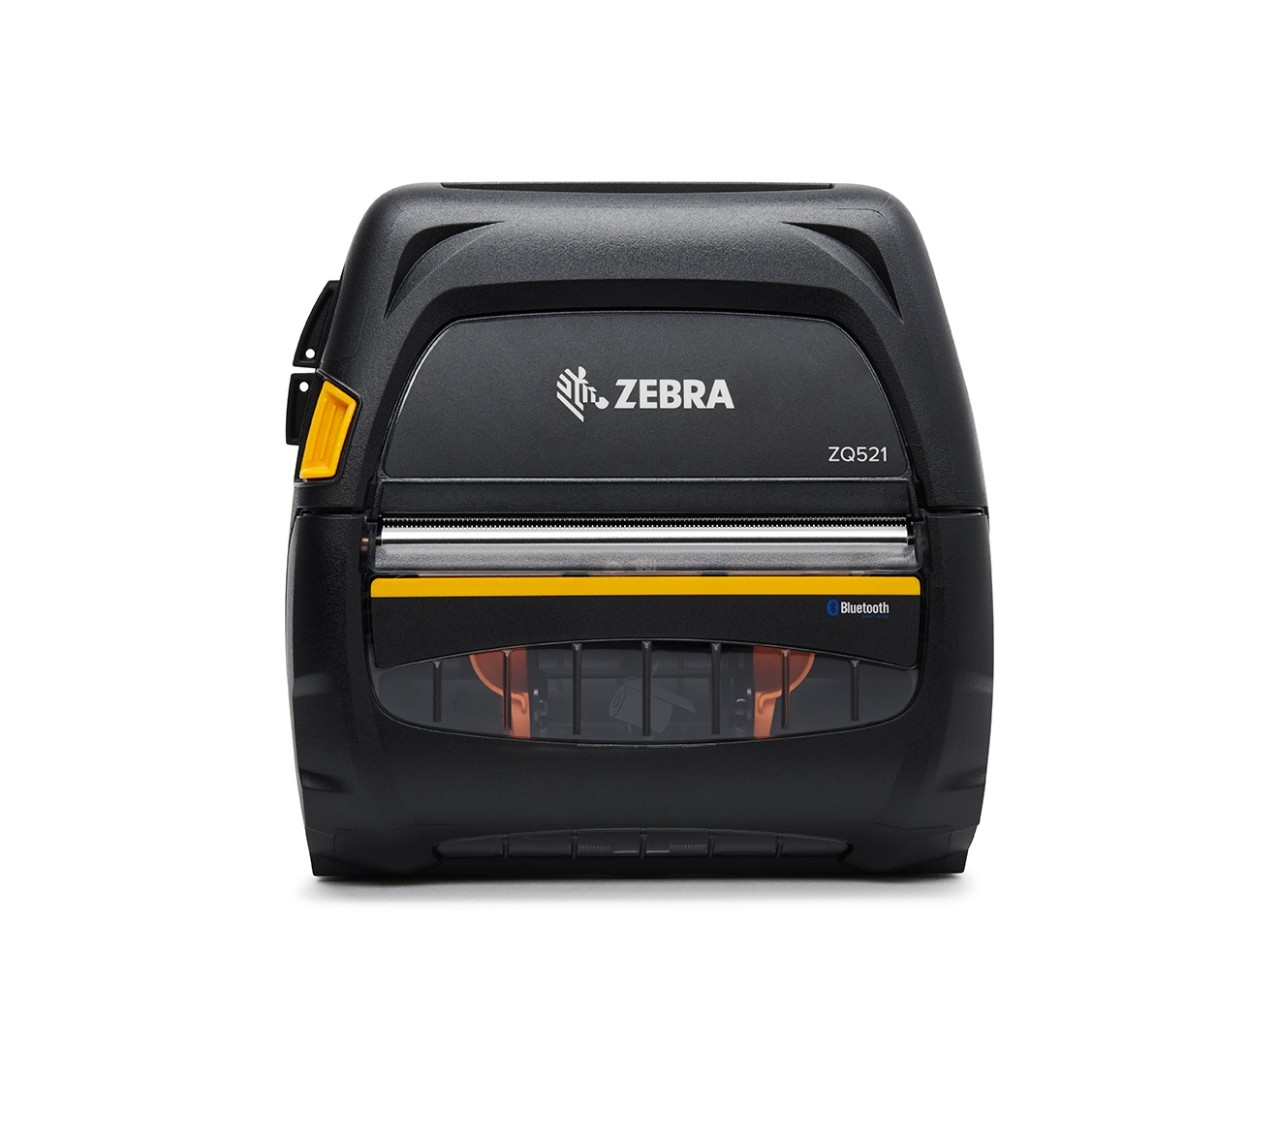 ZQ521 Mobile Printer